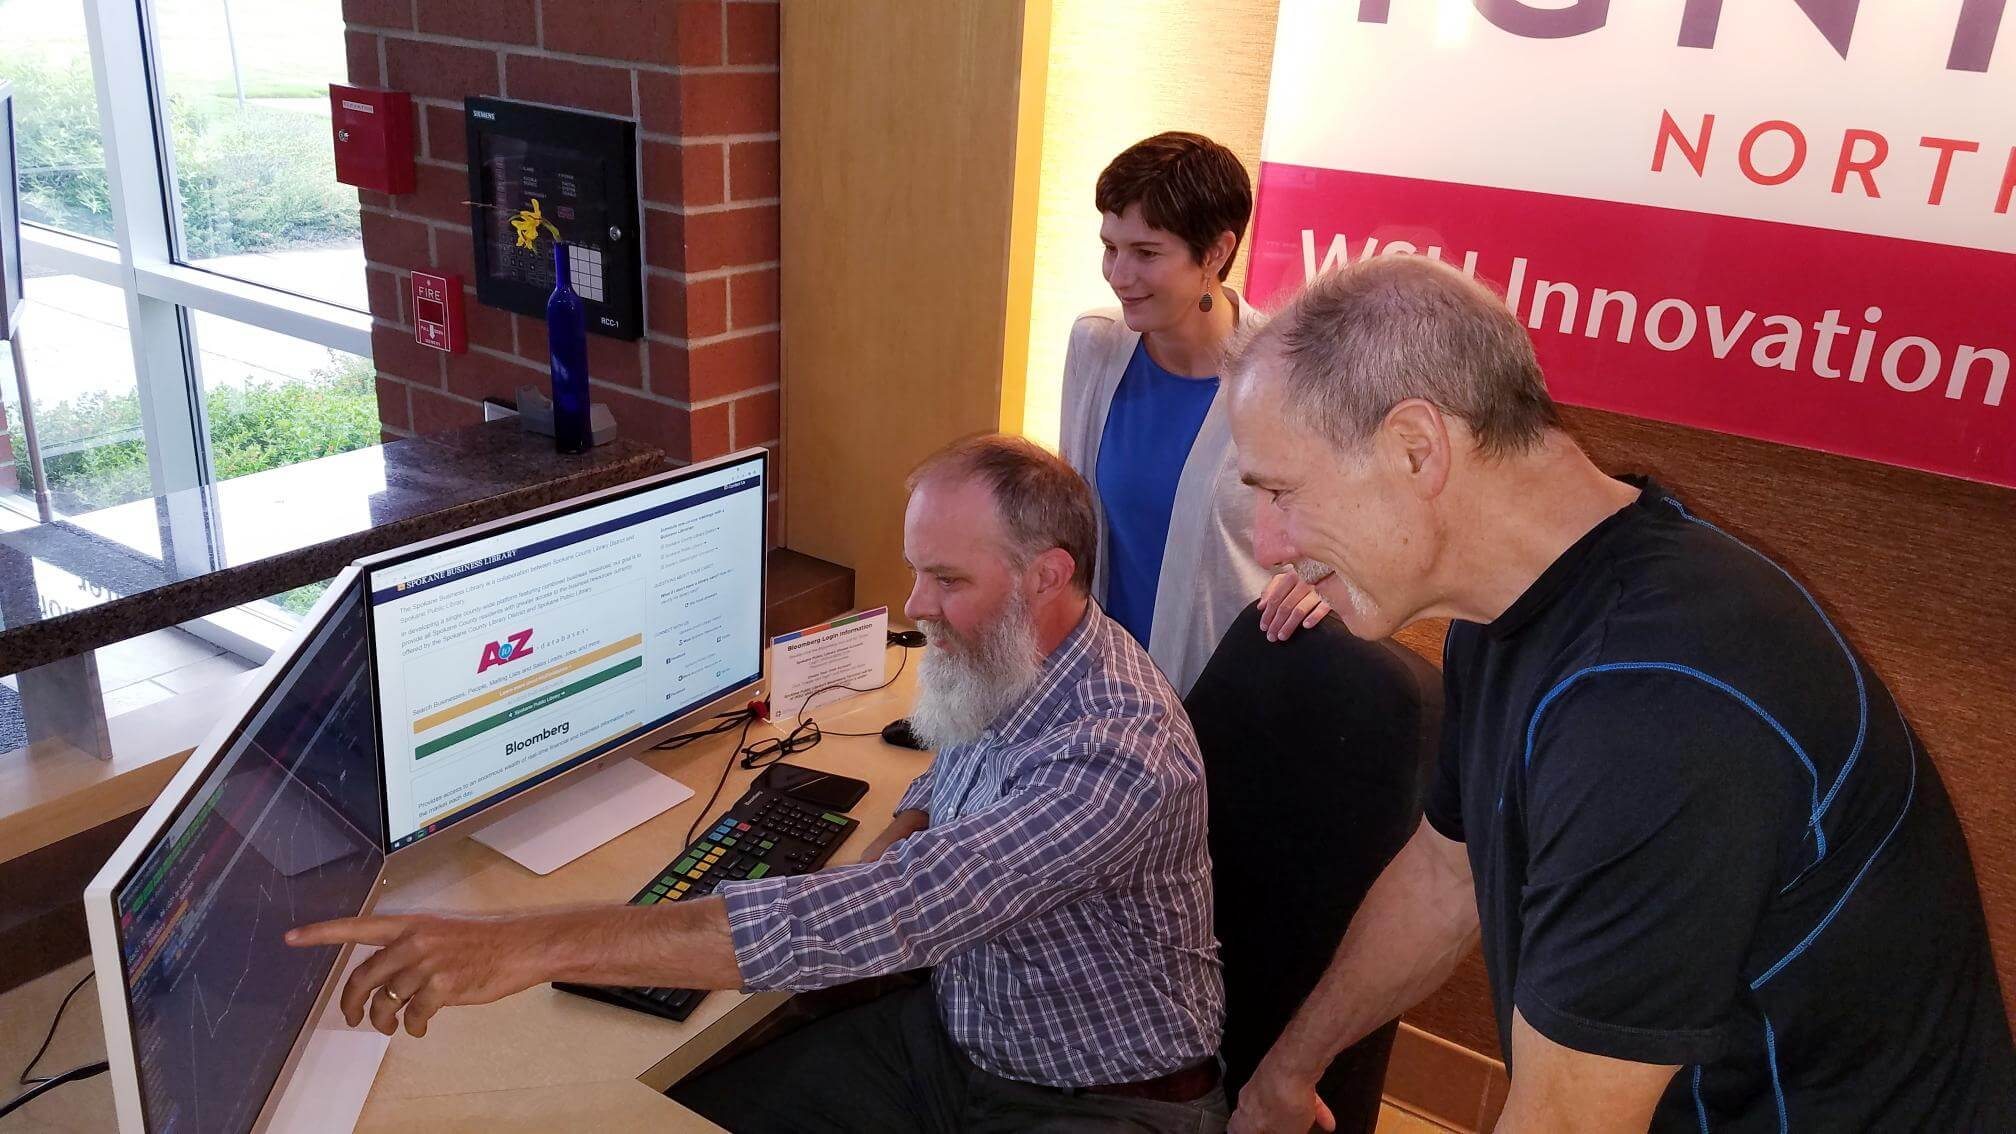 Spokane Public Library's Bloomberg Terminal temporarily moved to sp3nw offices in U-District's Ignite Building